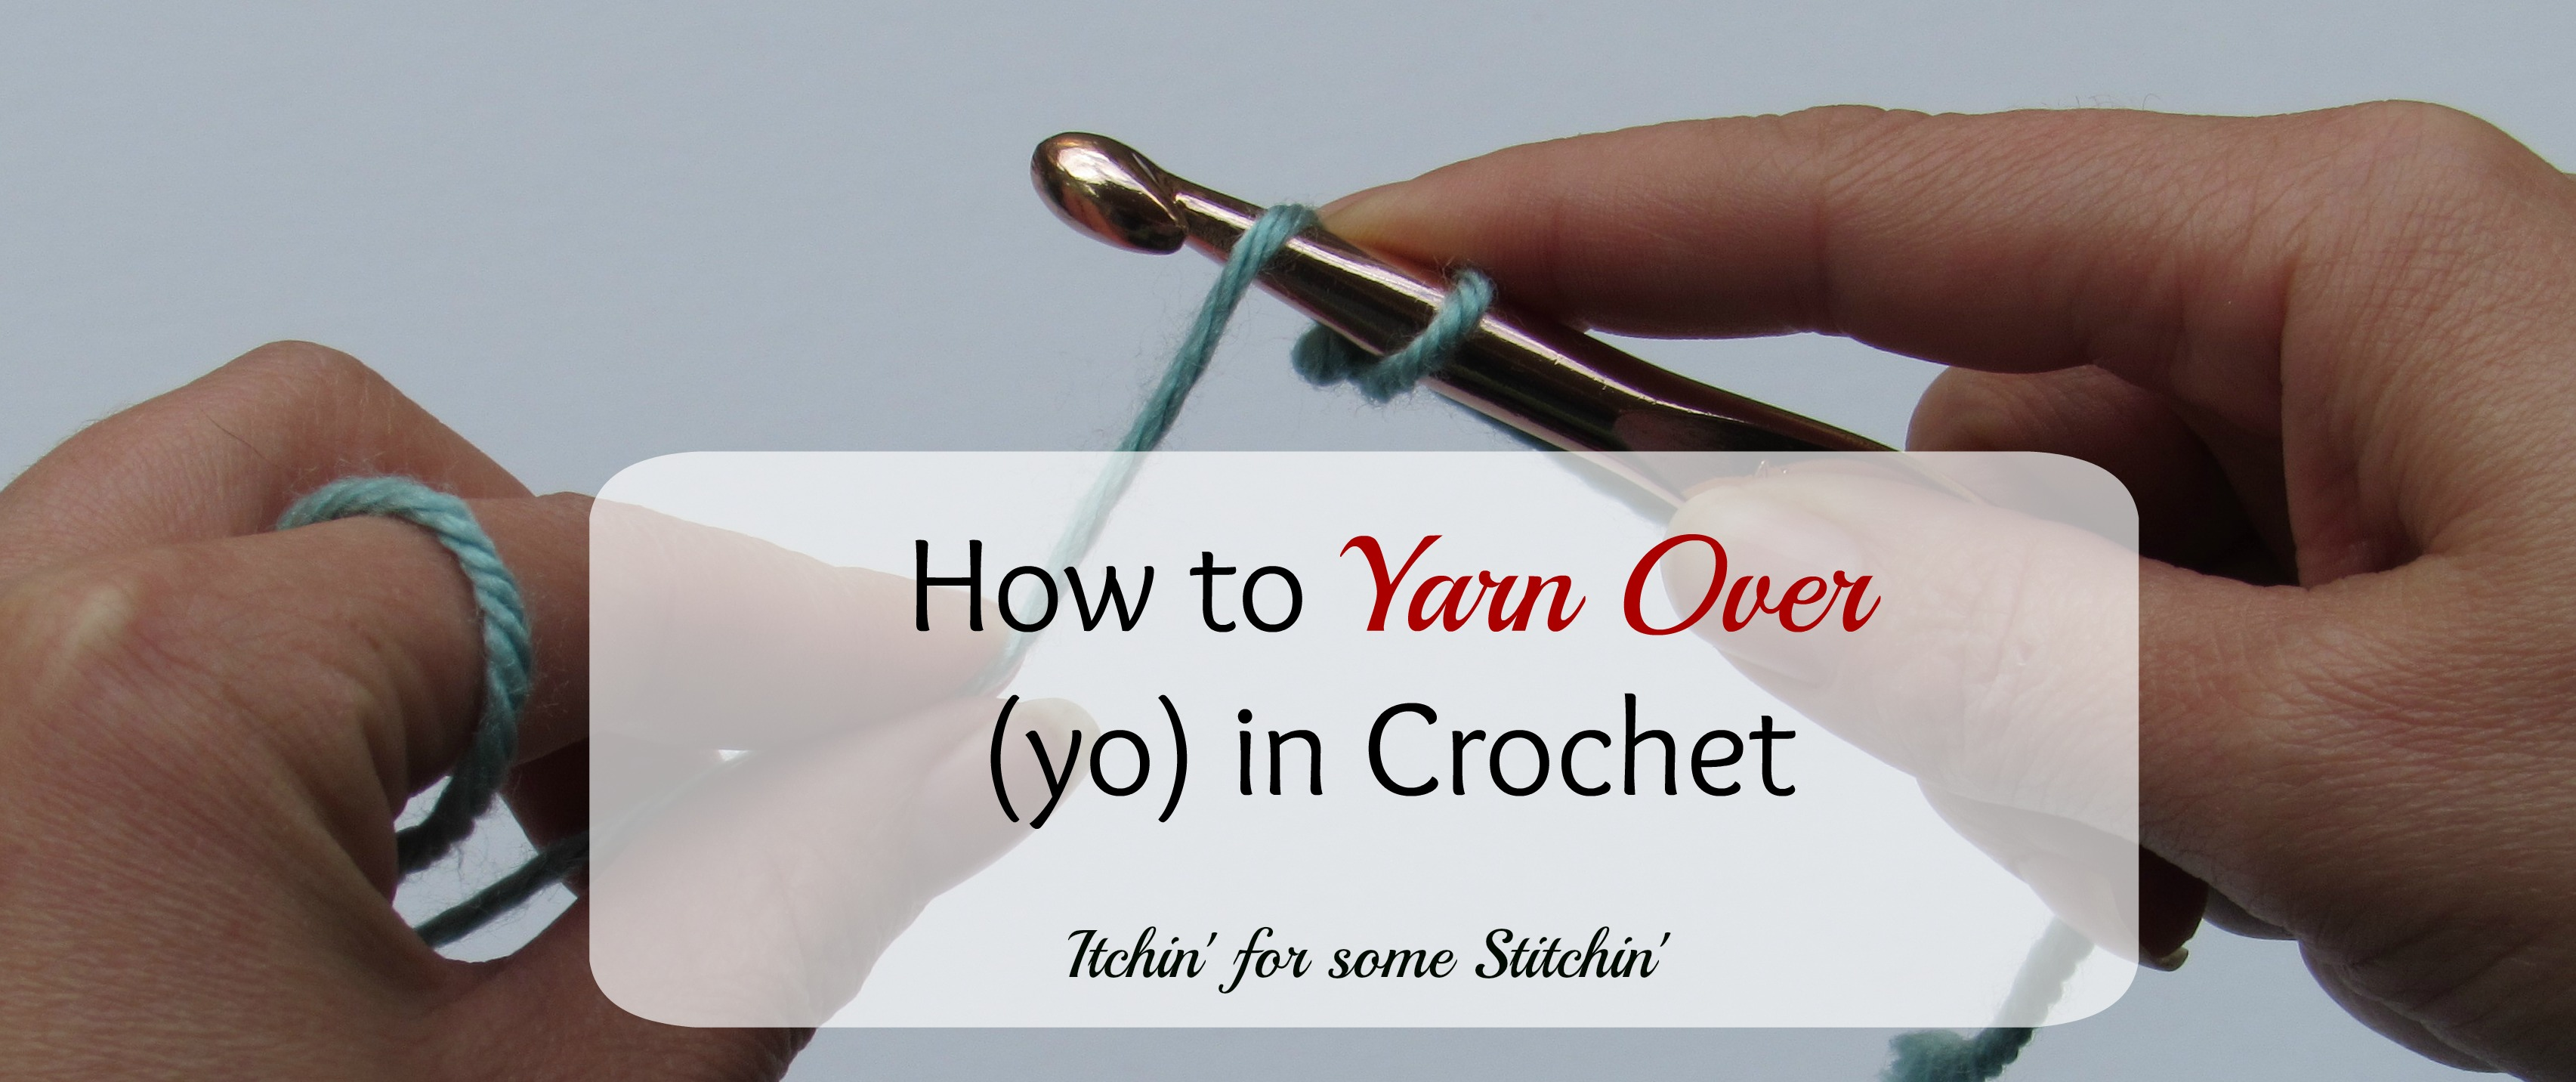 How to yarn over in crochet itchin for some stitchin ccuart Image collections